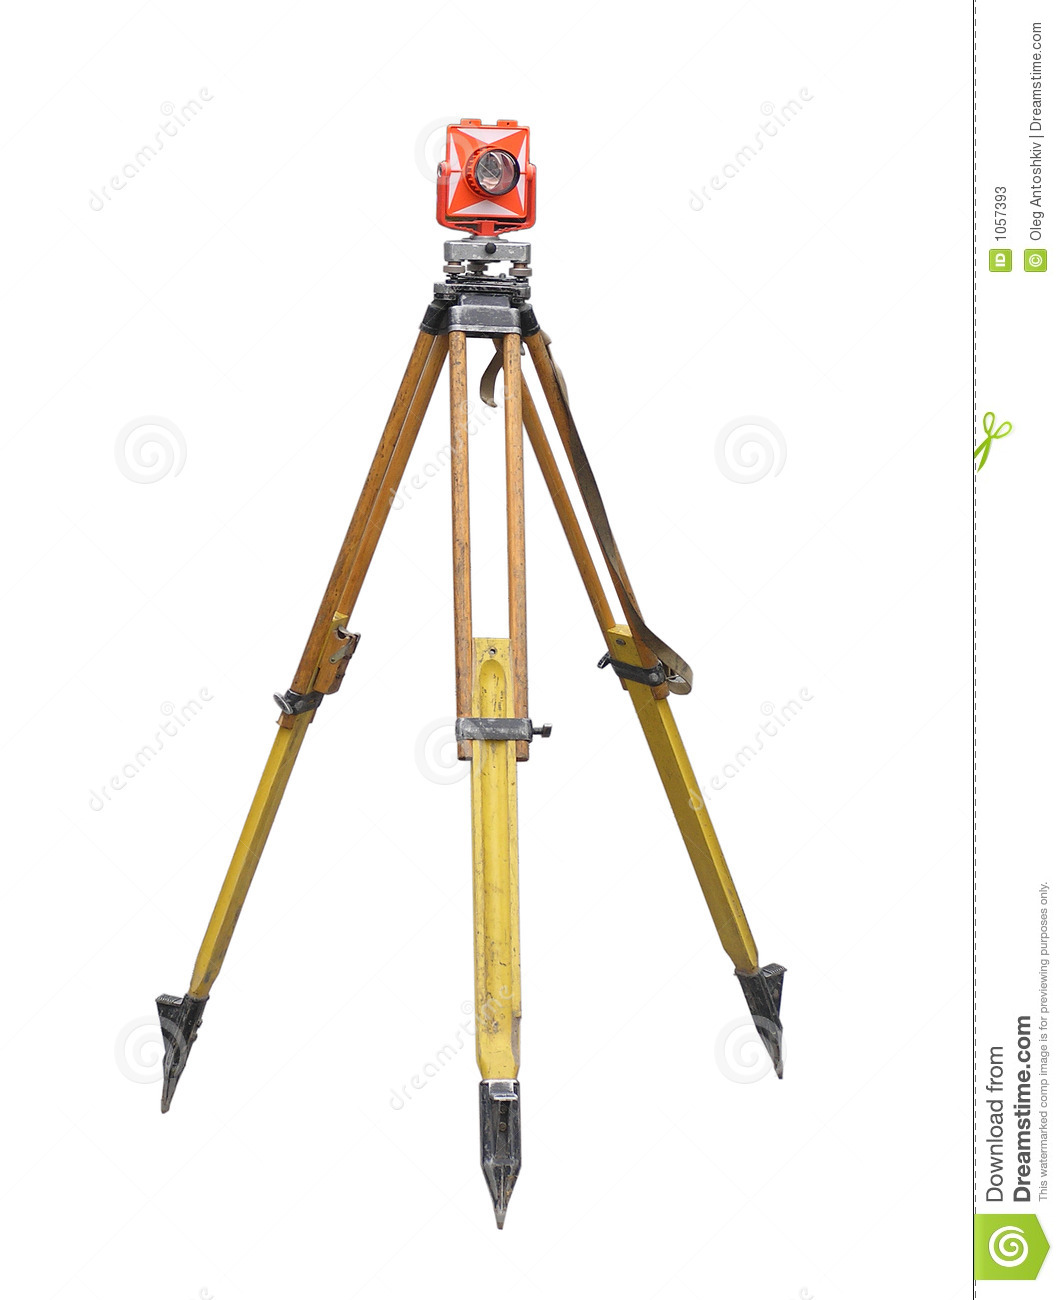 Isolated wooden theodolite tripod over white.